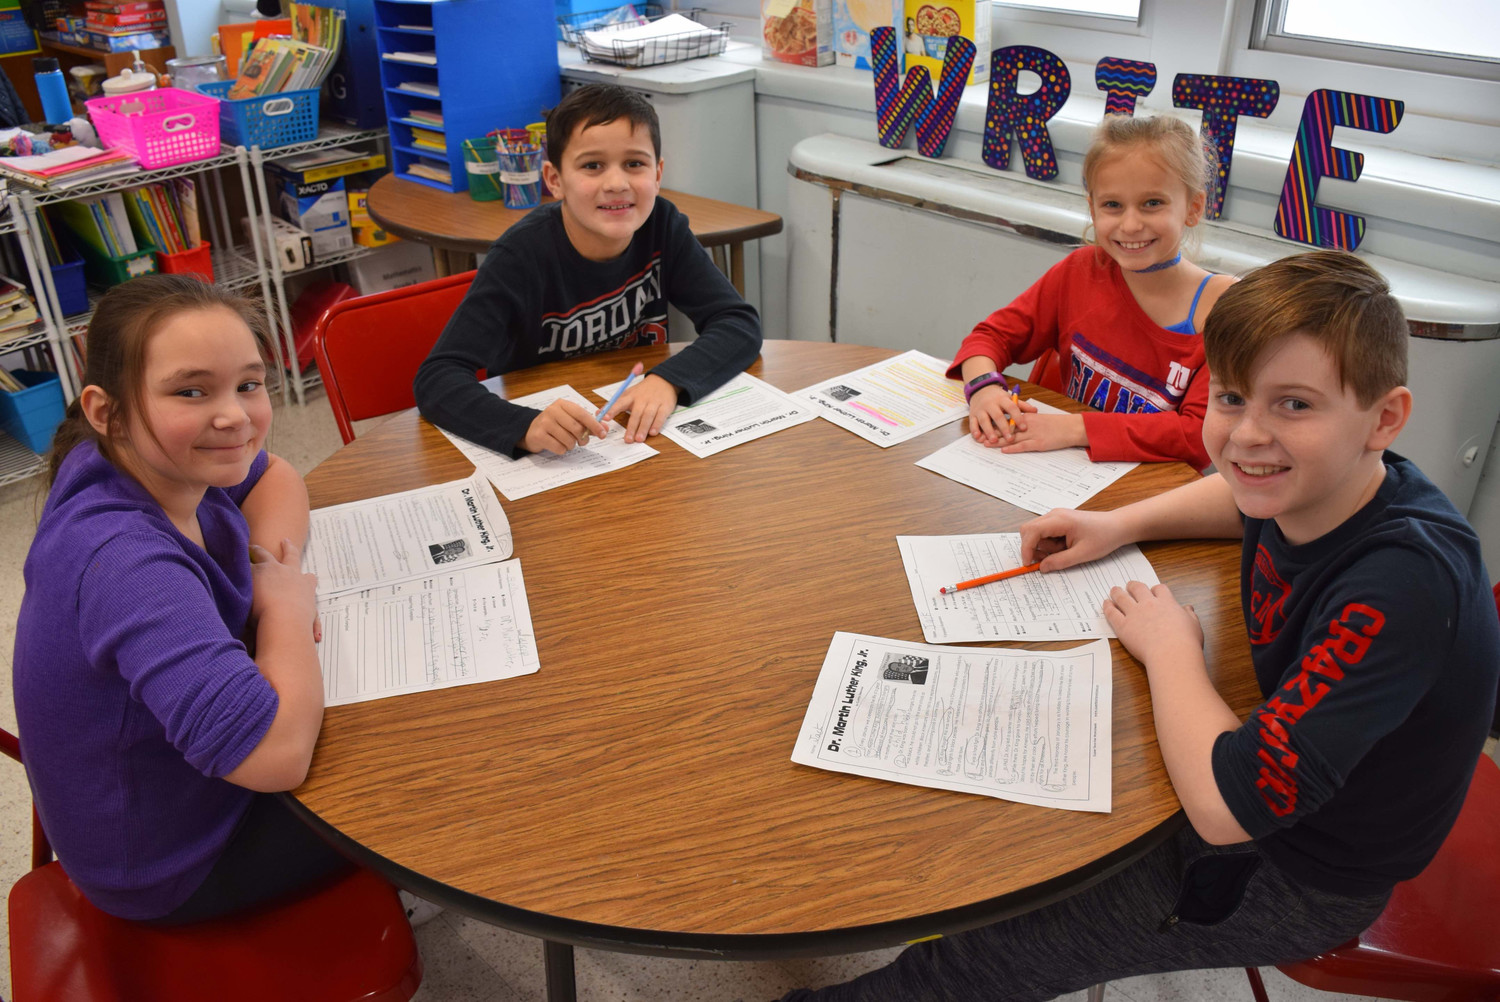 John Dinkelmeyer Elementary School fourth-graders Bella Wunner, left, Lucas Paingankar, Jordyn Dioguardi and Jack Weber completed response sheets after reading about Dr. Martin Luther King Jr.